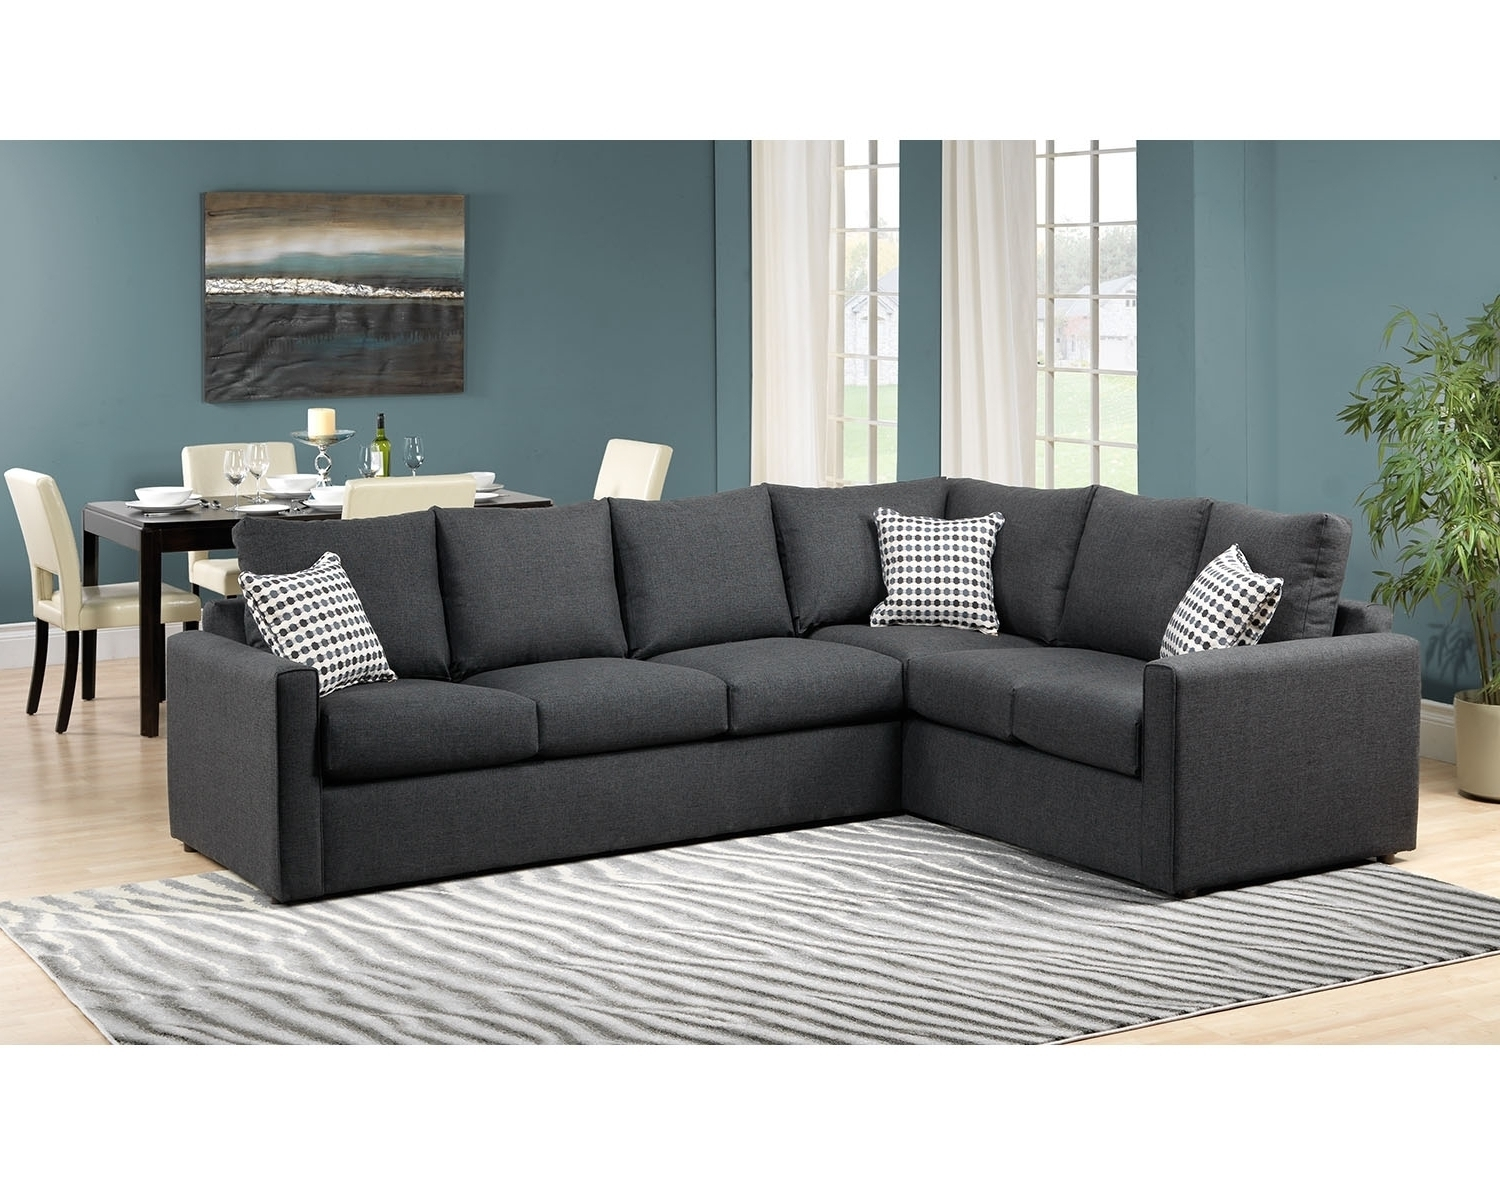 Most Current Leons Sectional Sofas Pertaining To Leons Sofa Bed Sectional (View 12 of 15)